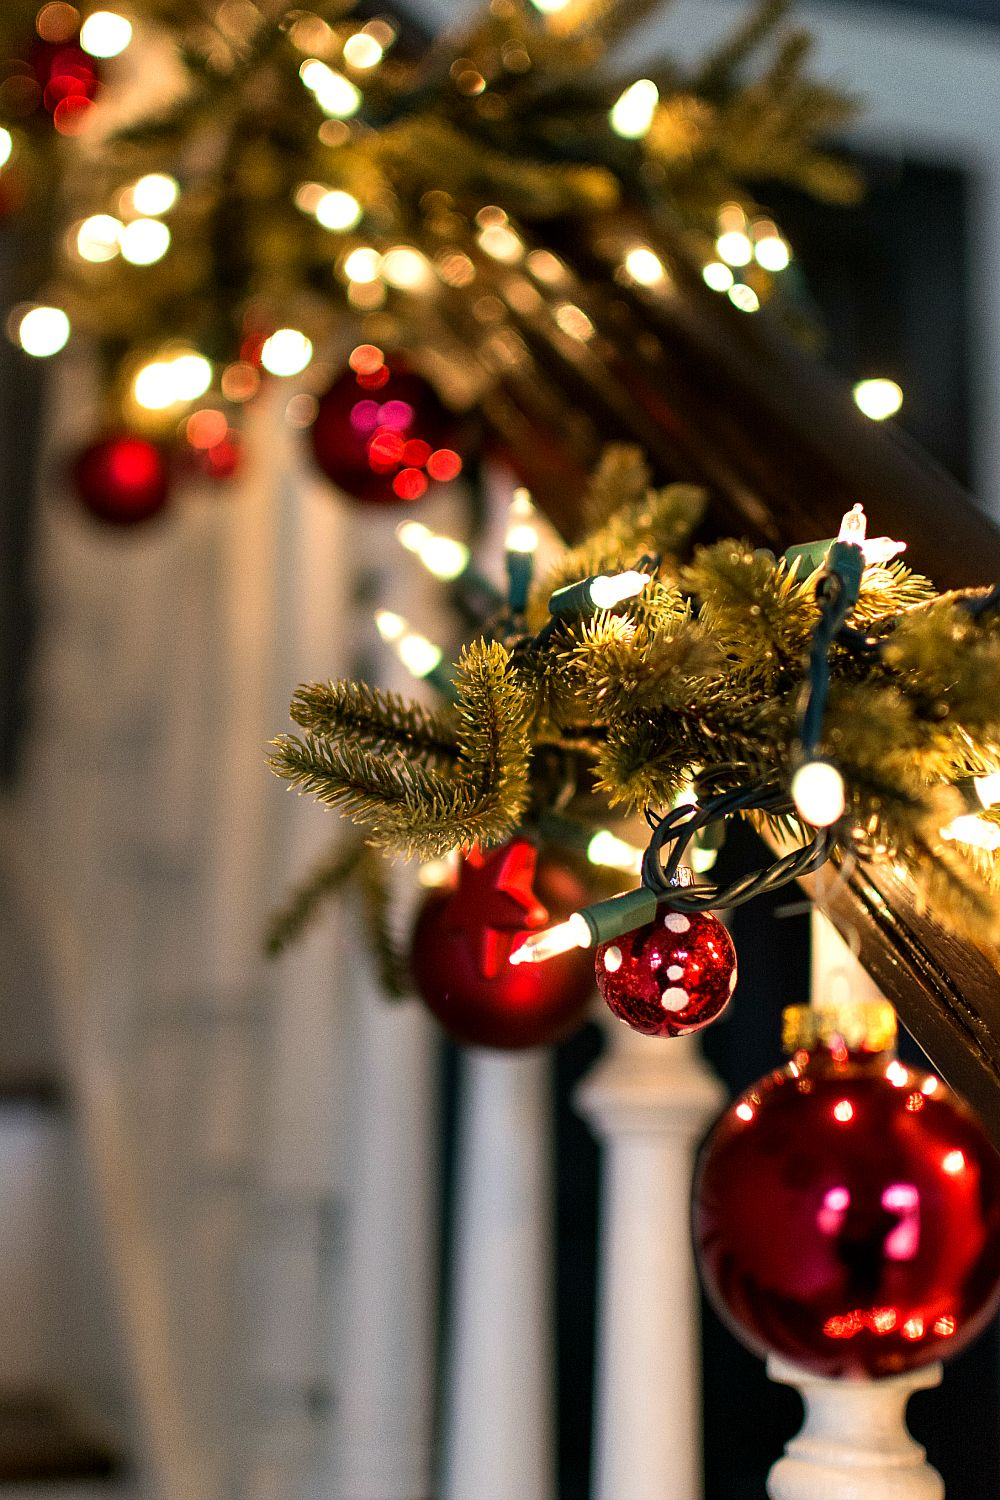 Decorating Garland With Ornaments Christmas Dreaming Christmas